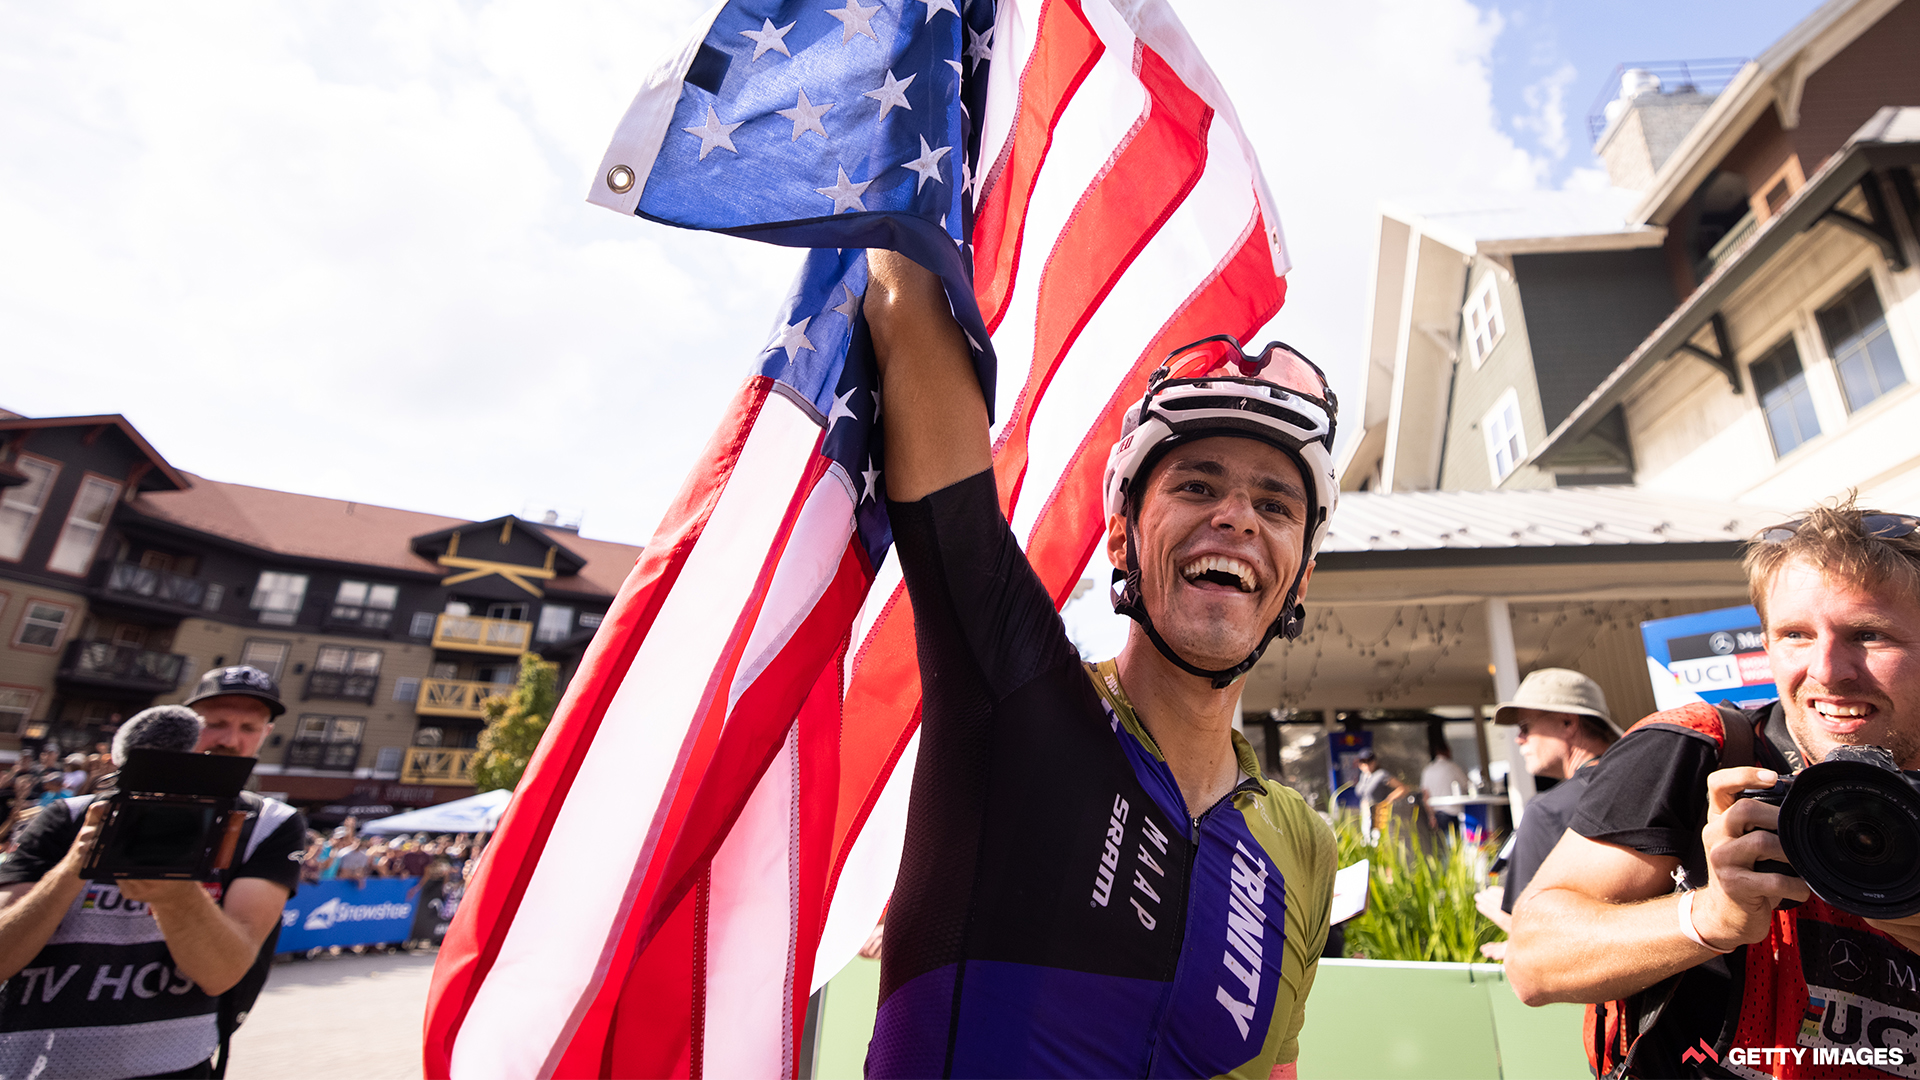 Christopher Blevins TRINITY racing Snowshoe UCI MTB World Cup